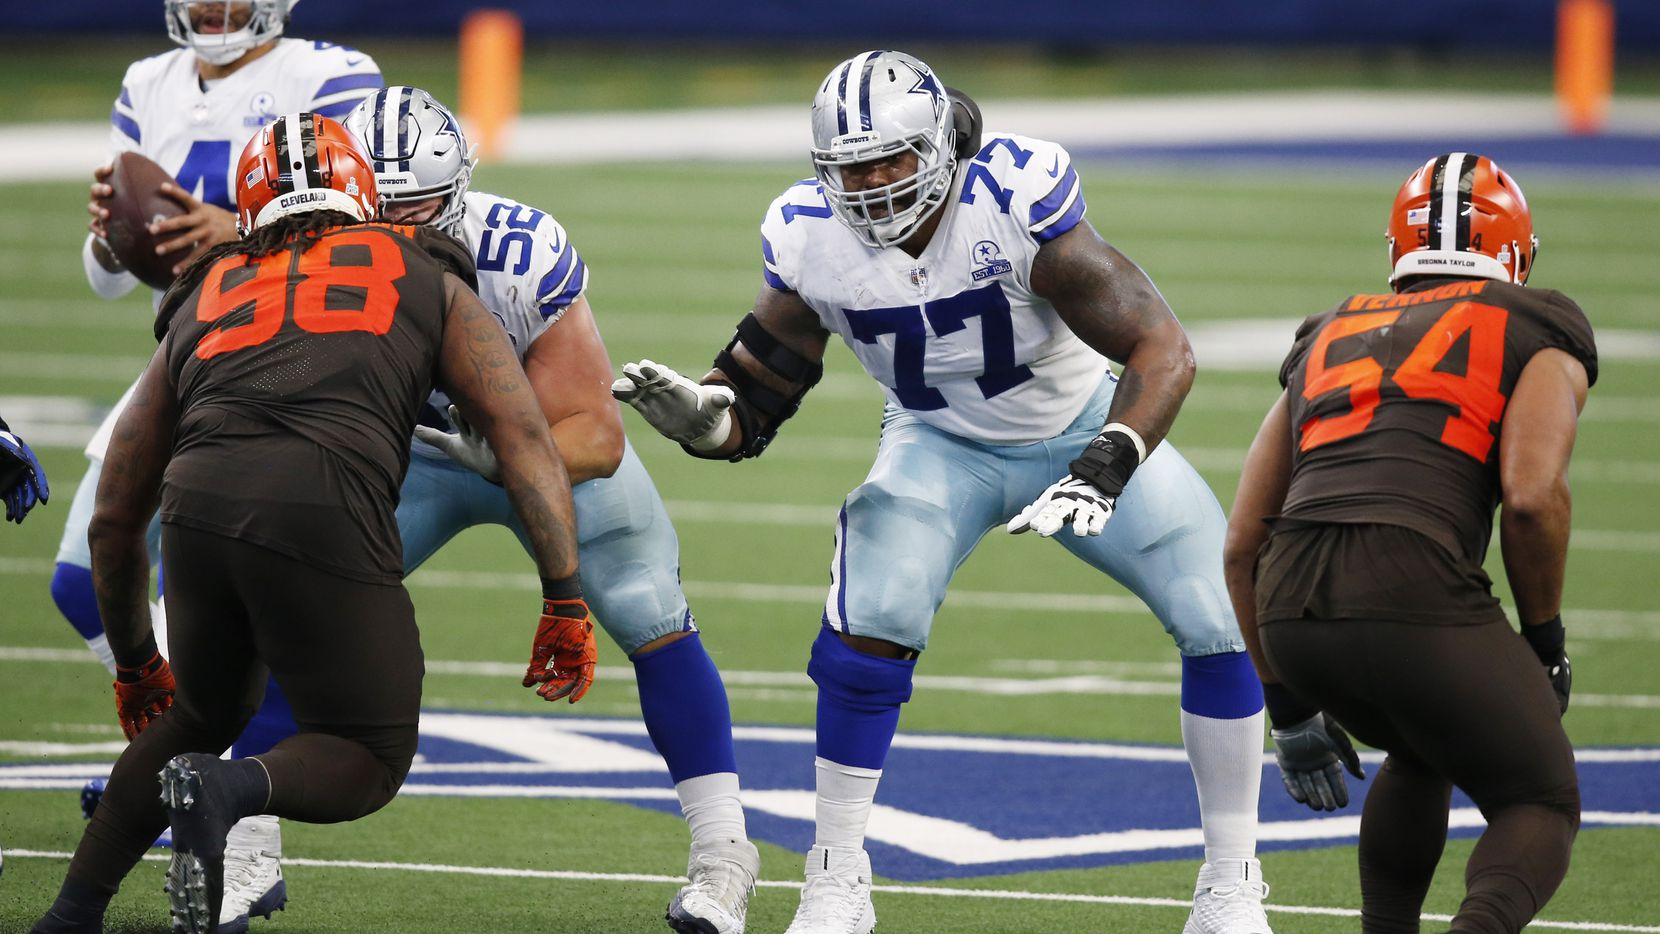 Cowboys offensive tackle Tyron Smith (77) and offensive guard Connor Williams (52) pass-block as quarterback Dak Prescott (4) drops back during the second half of play at AT&T Stadium in Arlington on Sunday, Oct. 4, 2020.